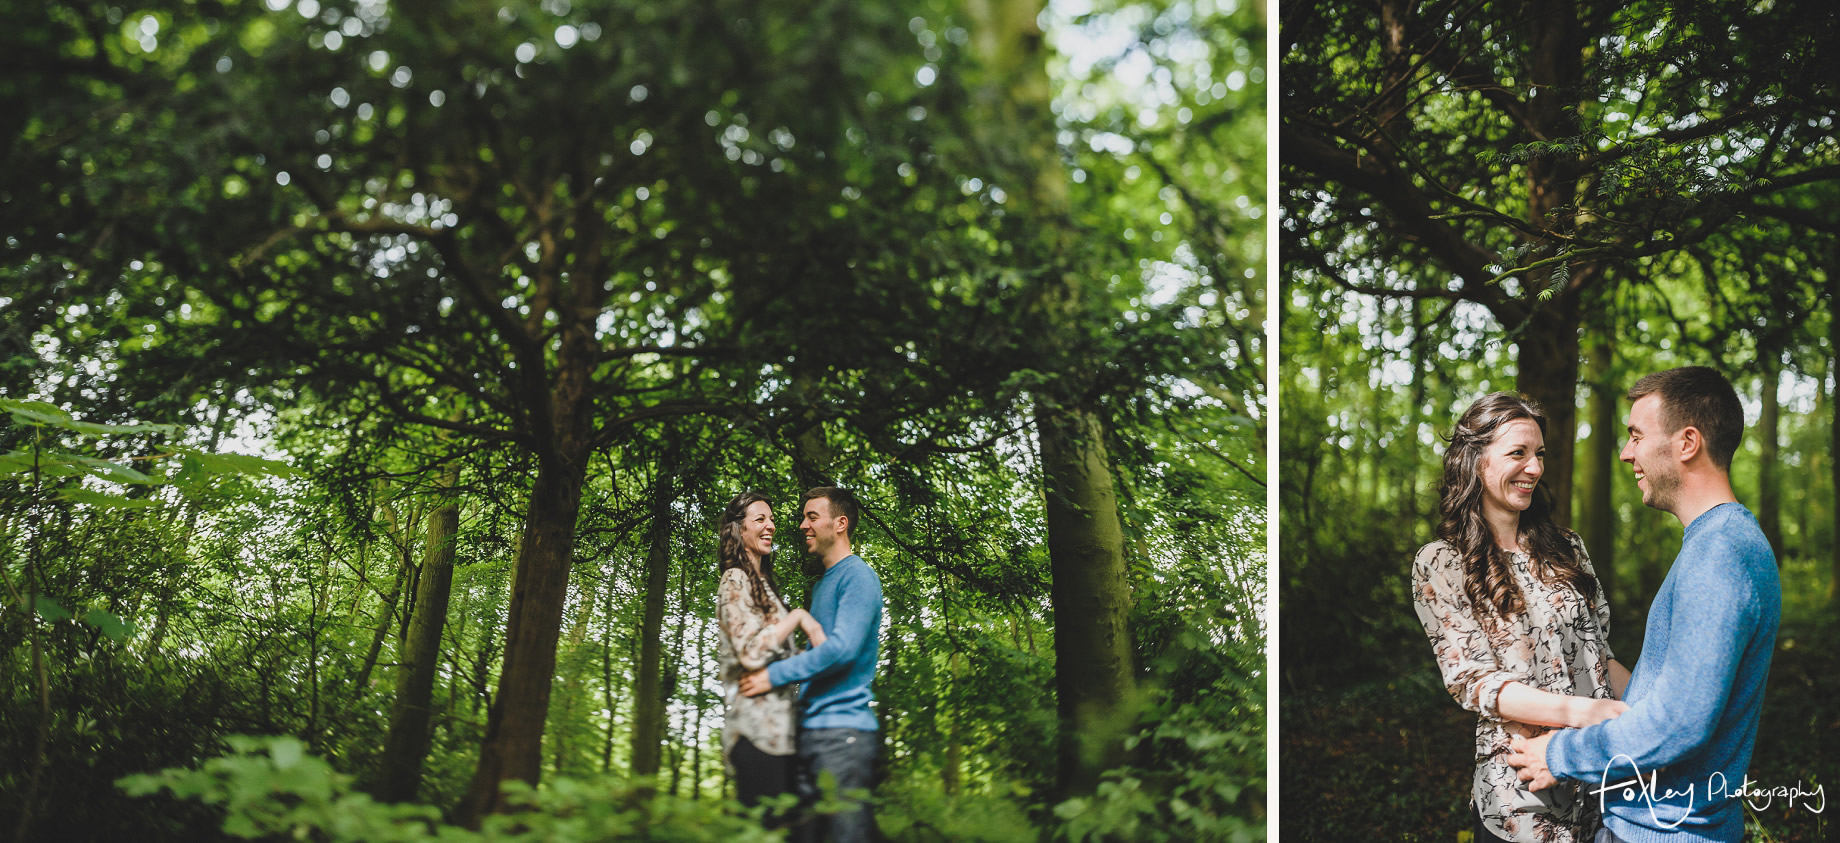 Rebecca-and-Dan-Pre-Wedding-Shoot-at-Preston-Guild-Wheel-032